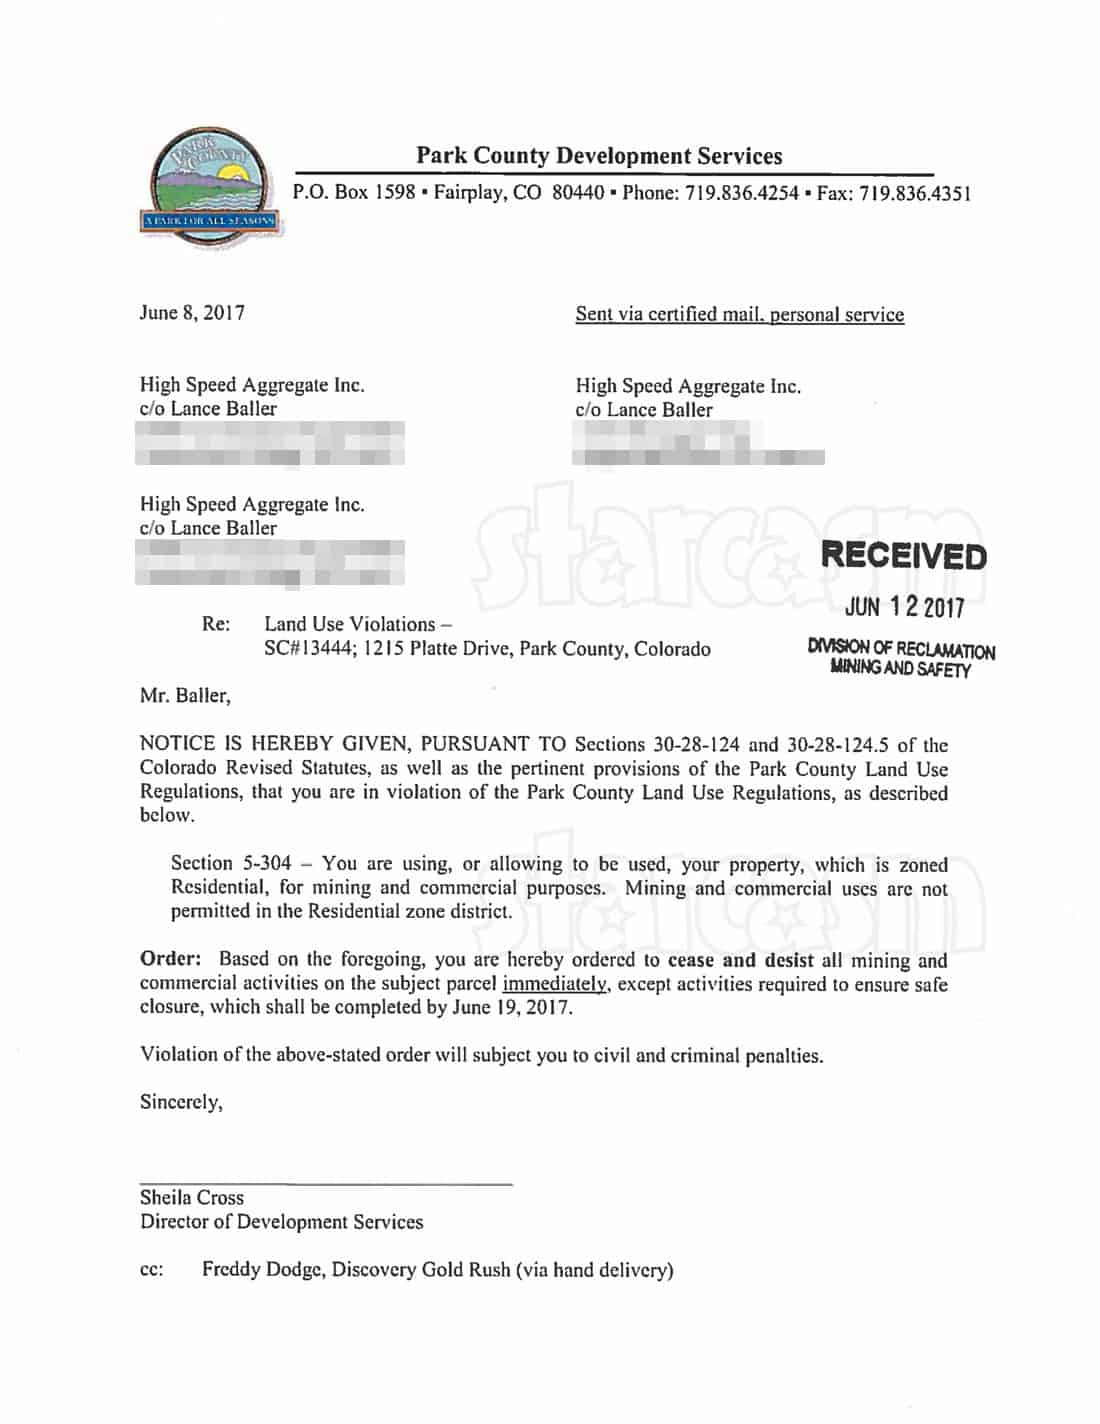 Gold_Rush_Todd Hoffman cease and desist letter